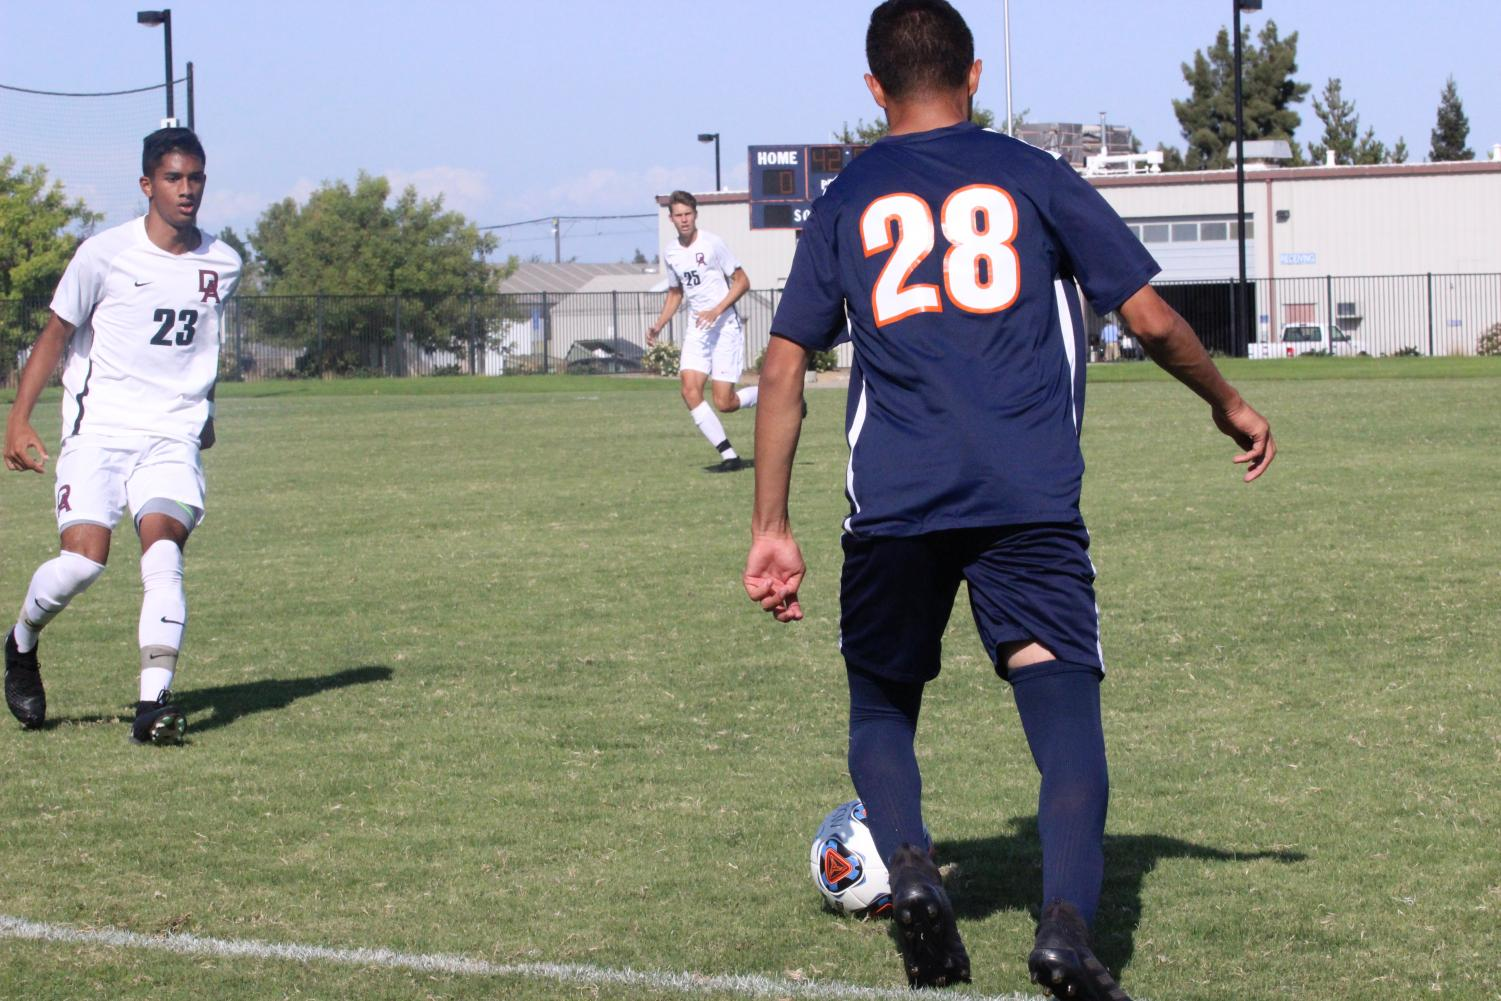 The men's soccer team lost 5-0 to De Anza College. The loss makes this the team's third game they lost consecutively.